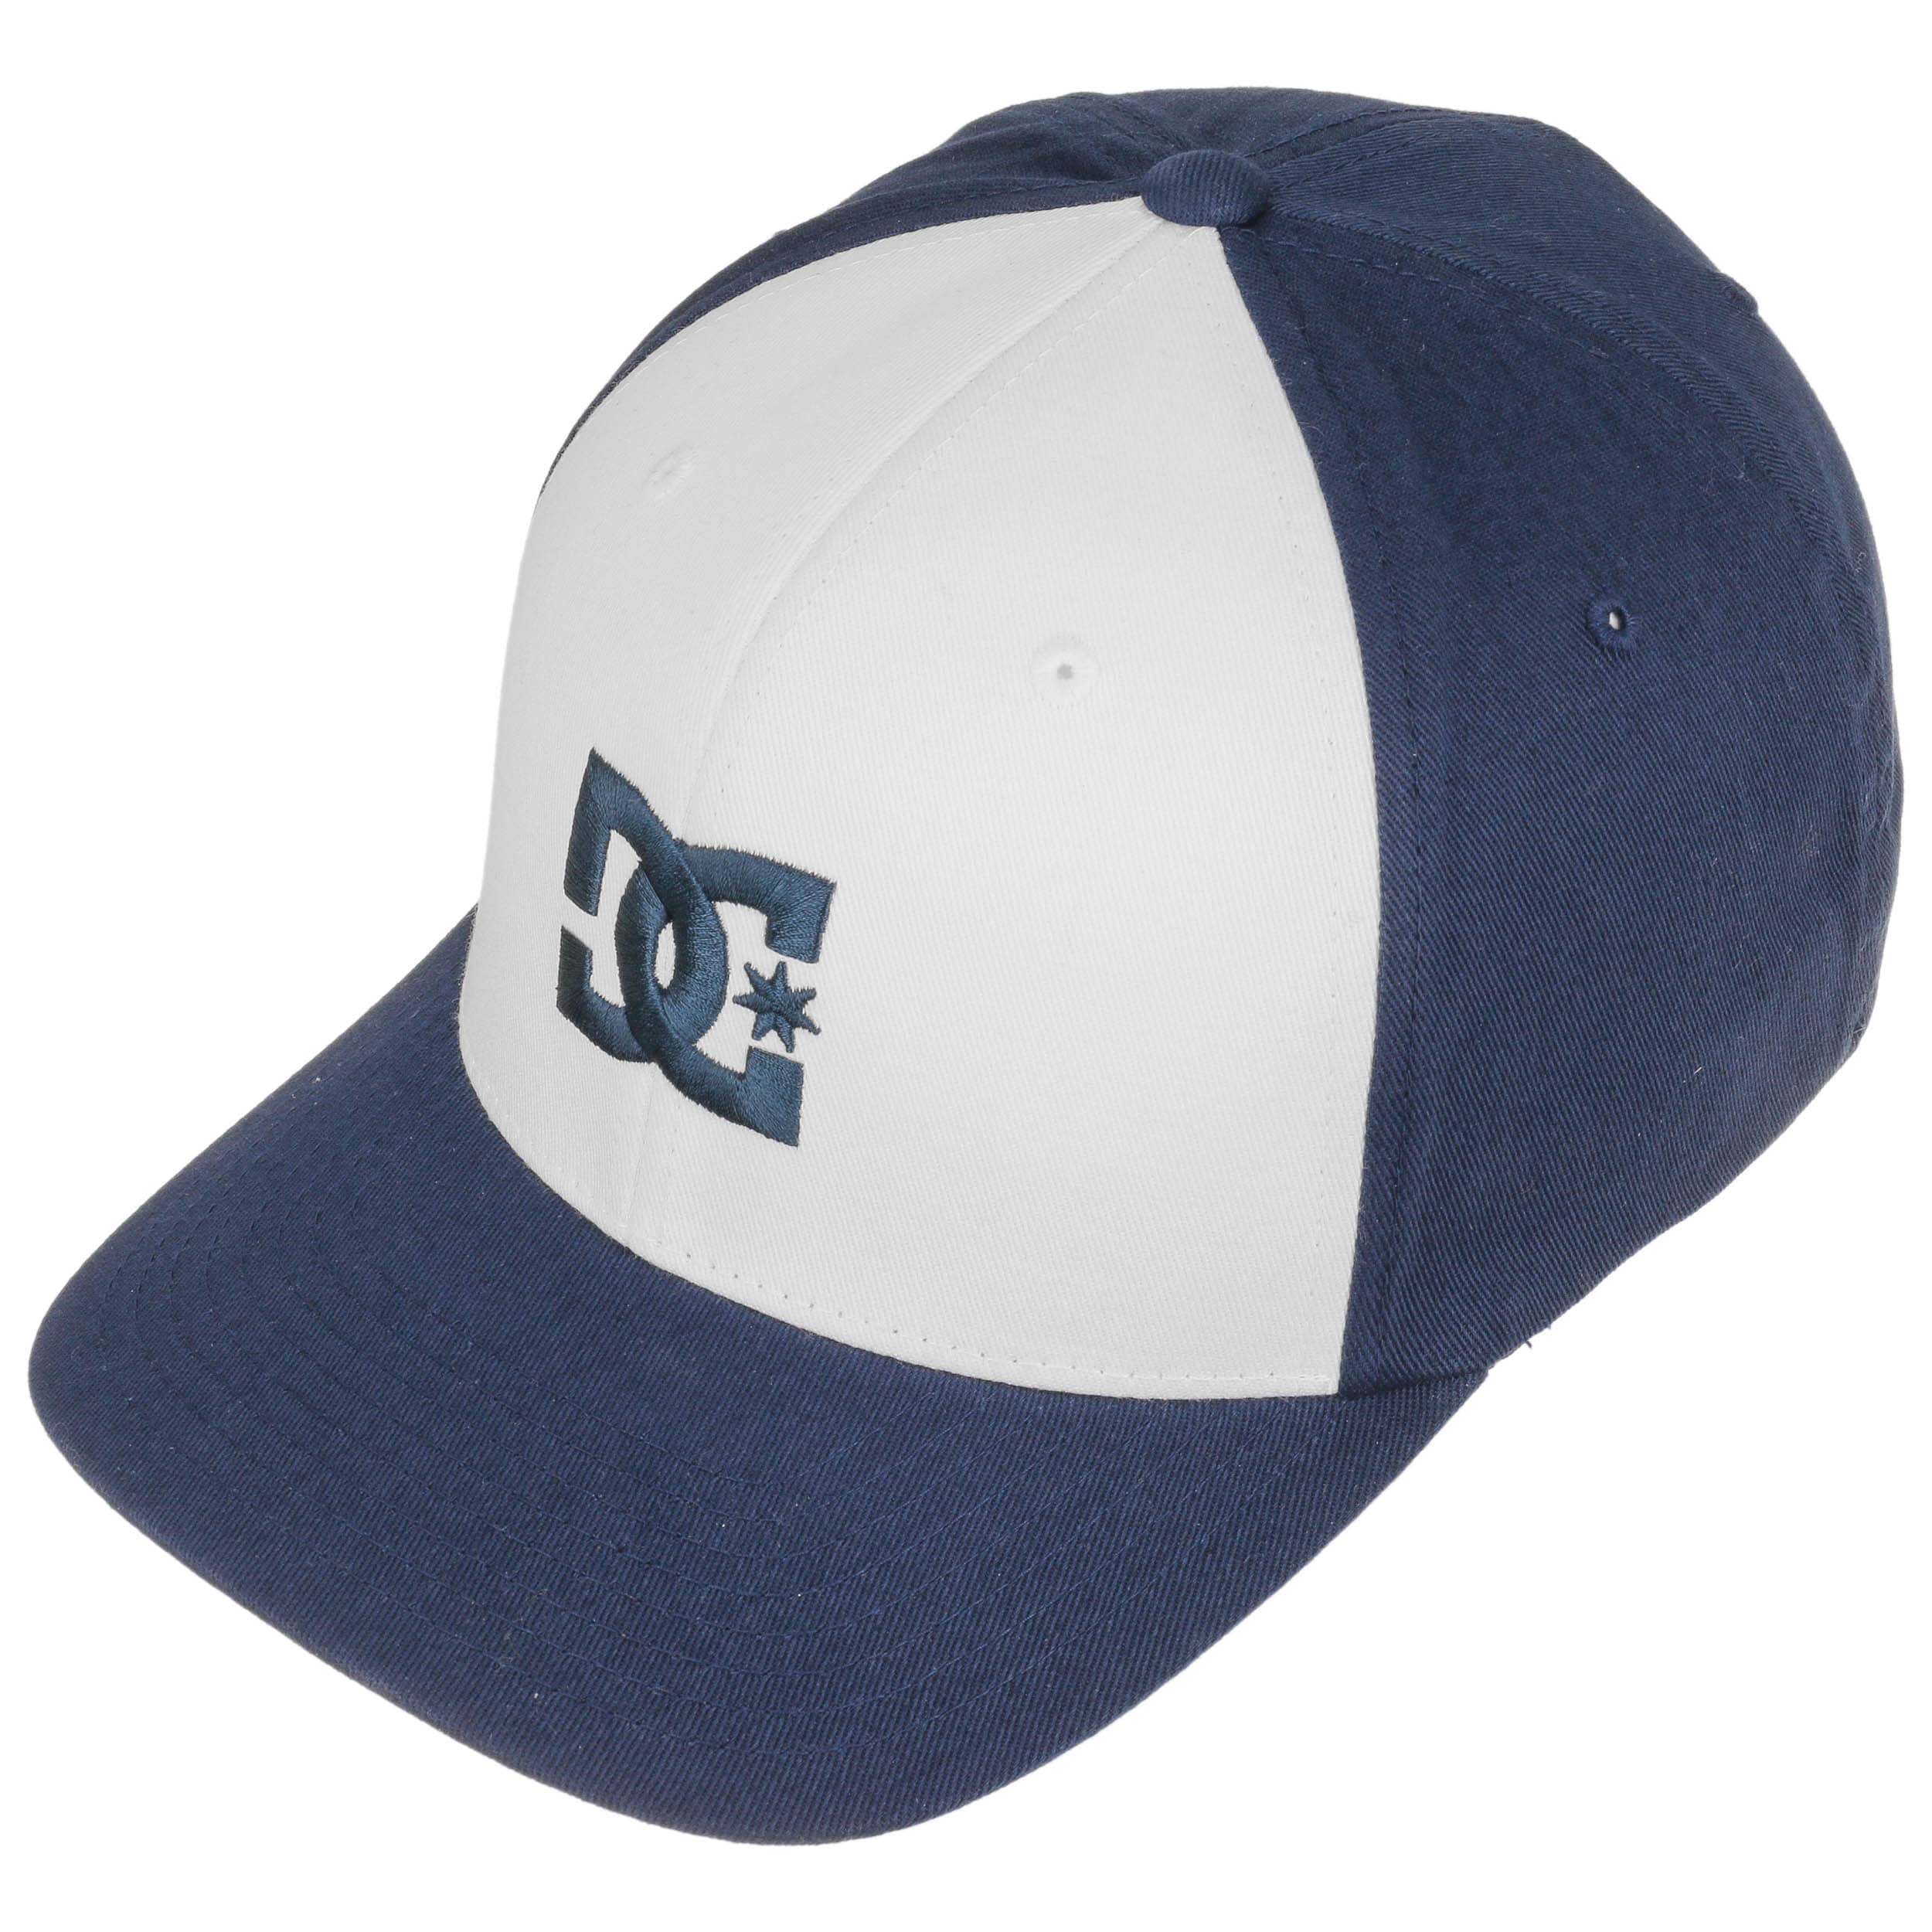 dc shoes Cap Star 2 - Cappellino Flexfit da Uomo - White - DC Shoes